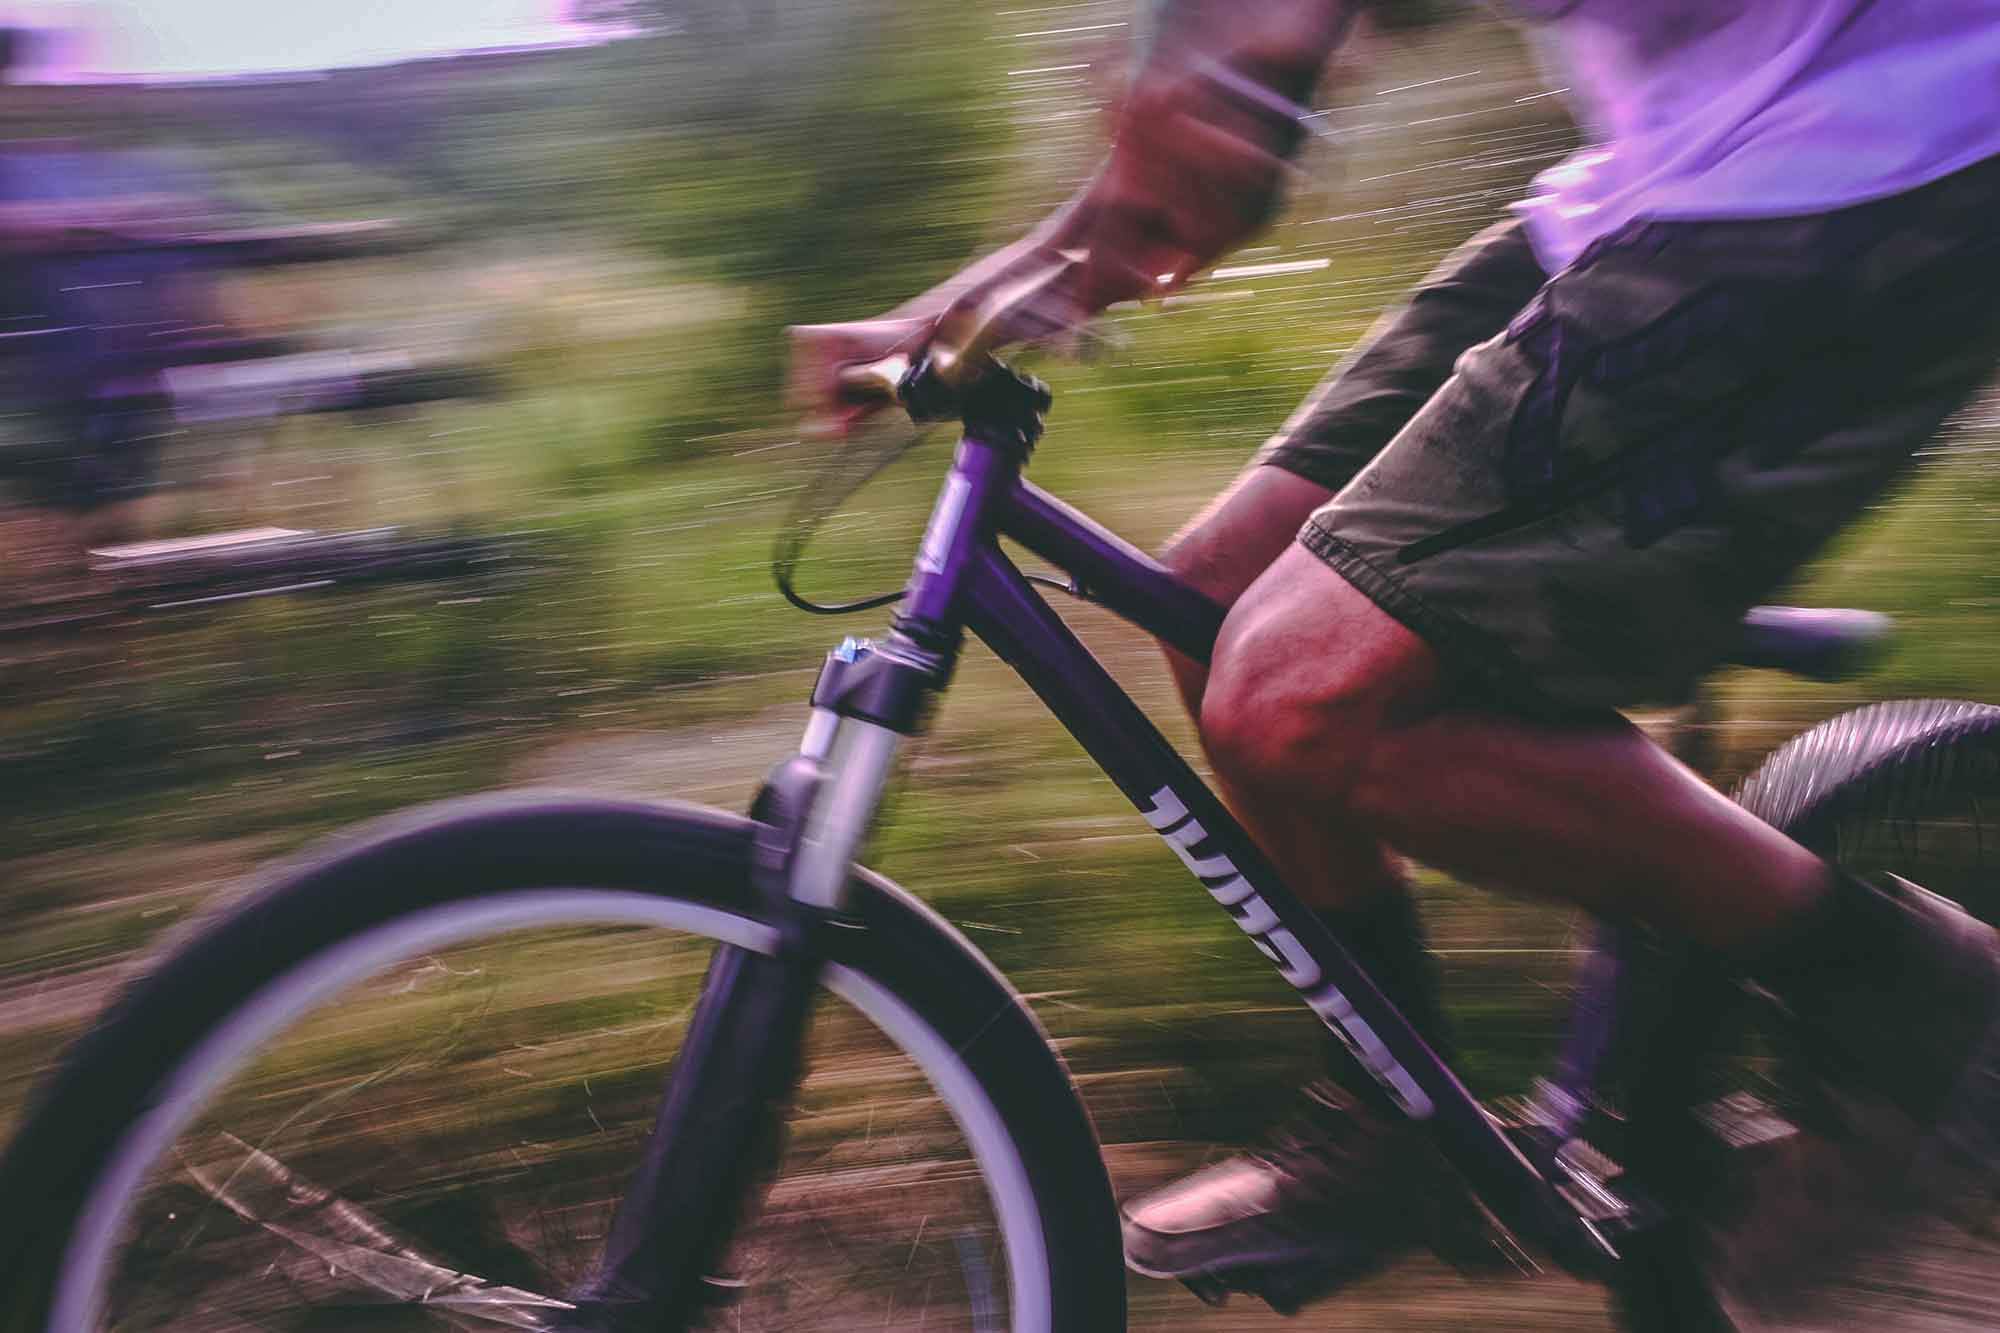 Closeup of someone riding a bicycle